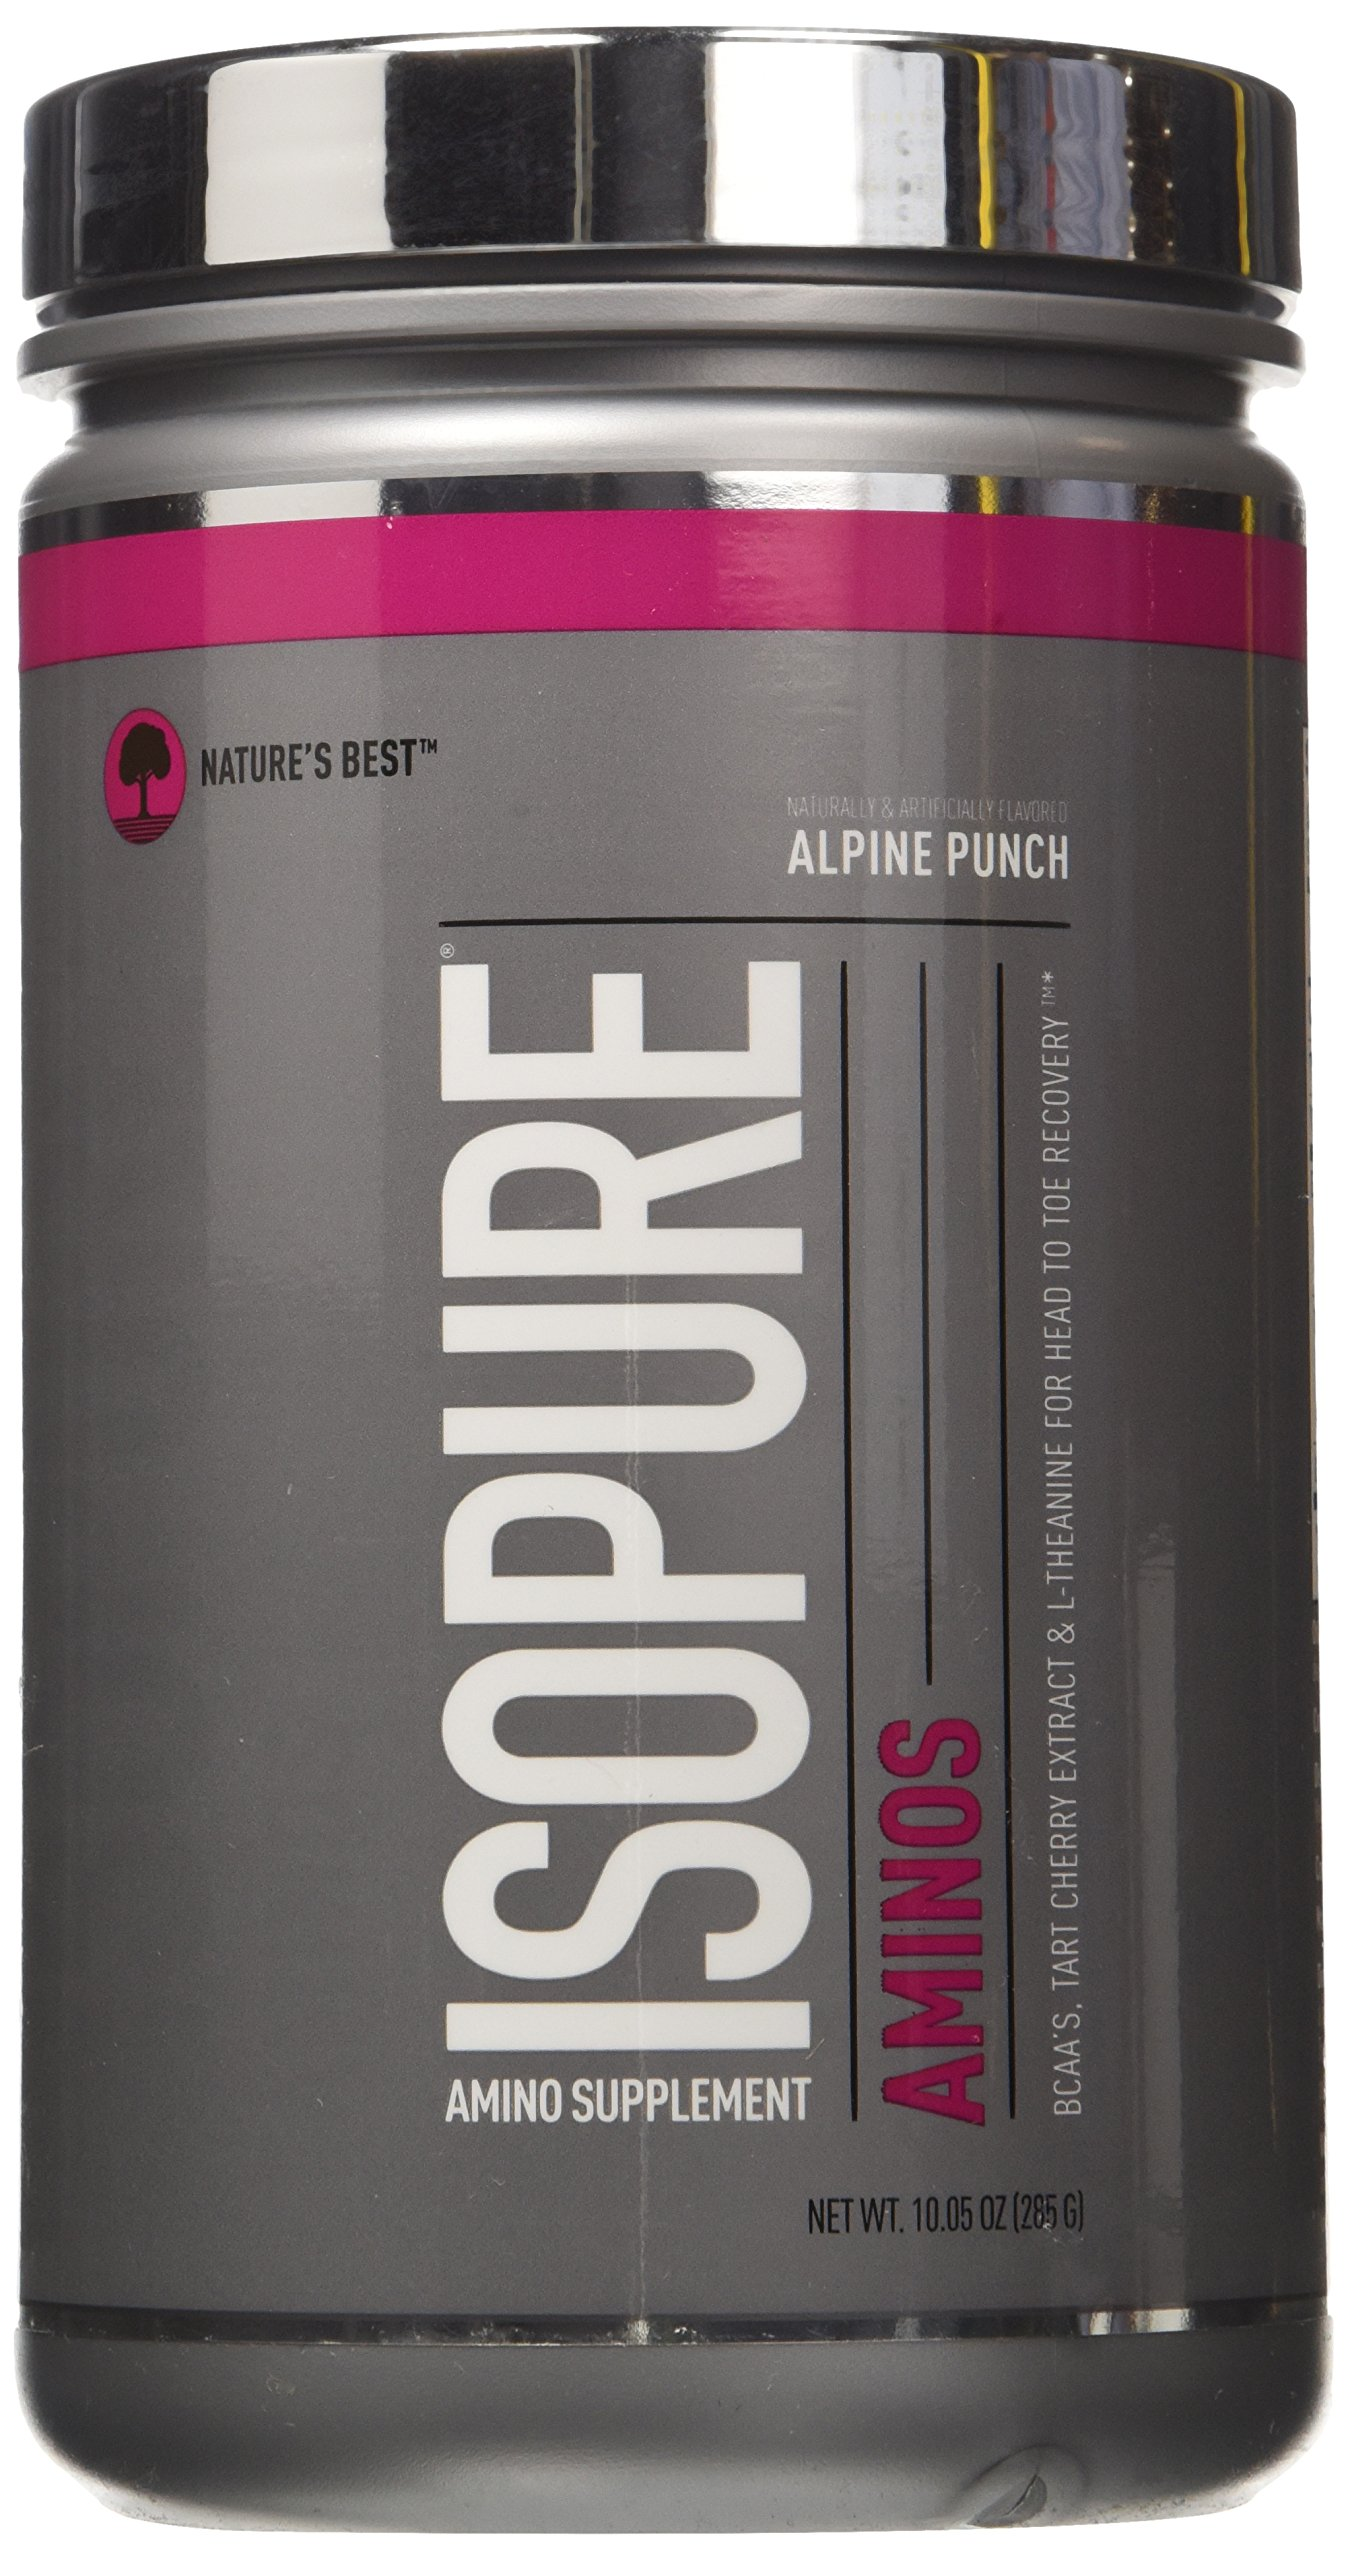 Isopure Amino Supplement, with BCAAs, Essential Amino Acids and L-Theanine, Flavor: Alpine Punch, 285 Gram